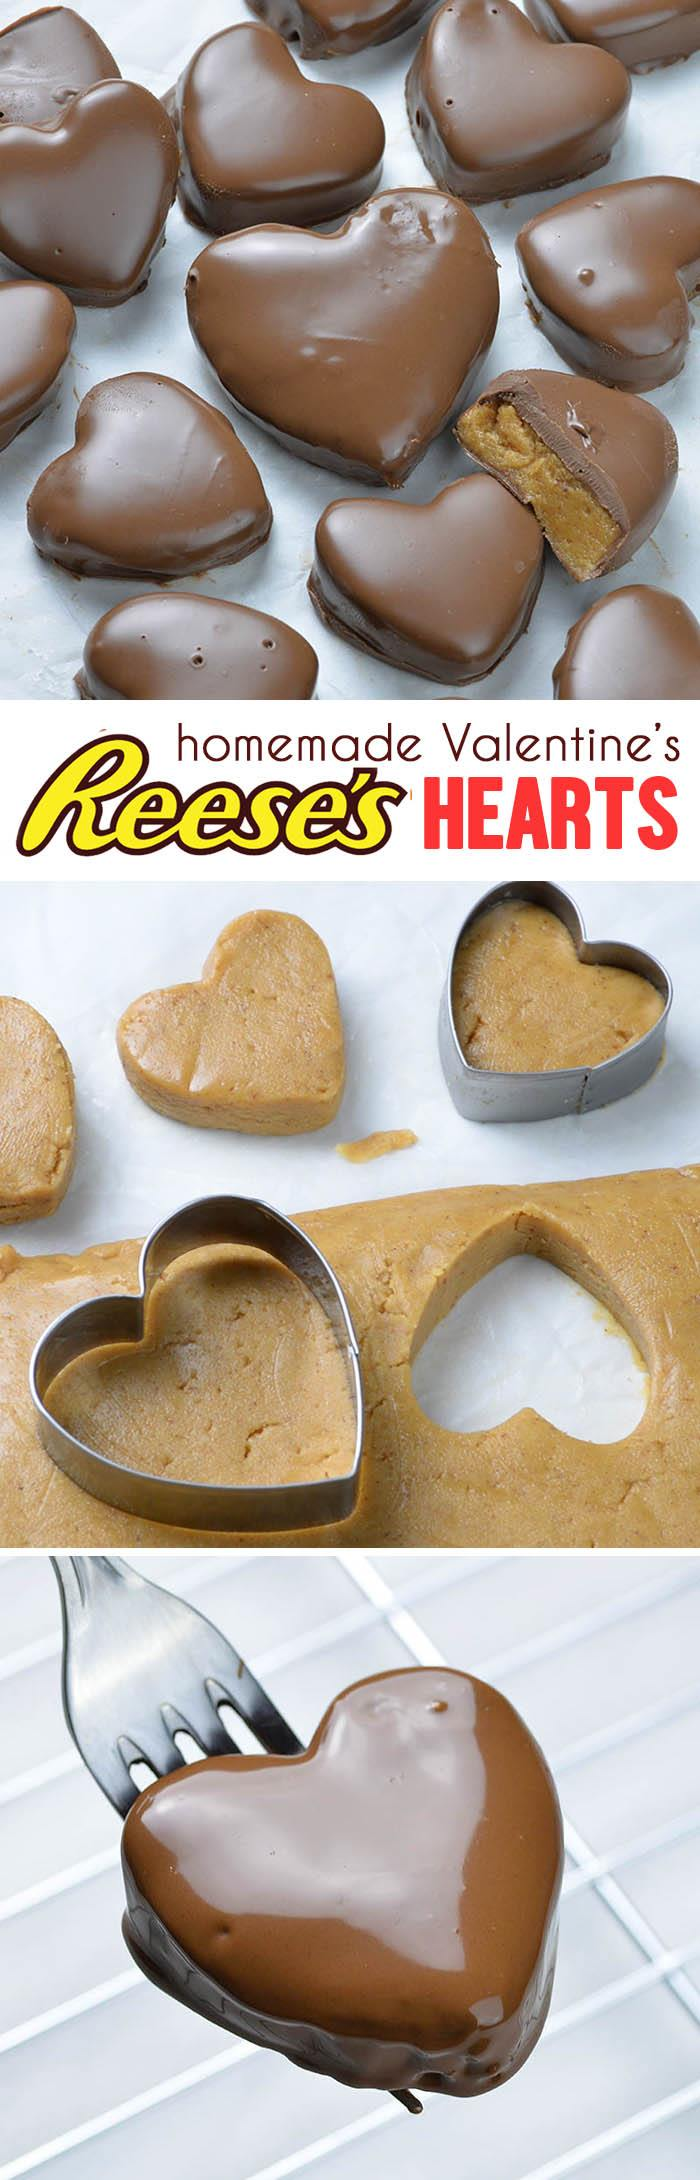 Homemade Reeses peanut butter heart candy recipe